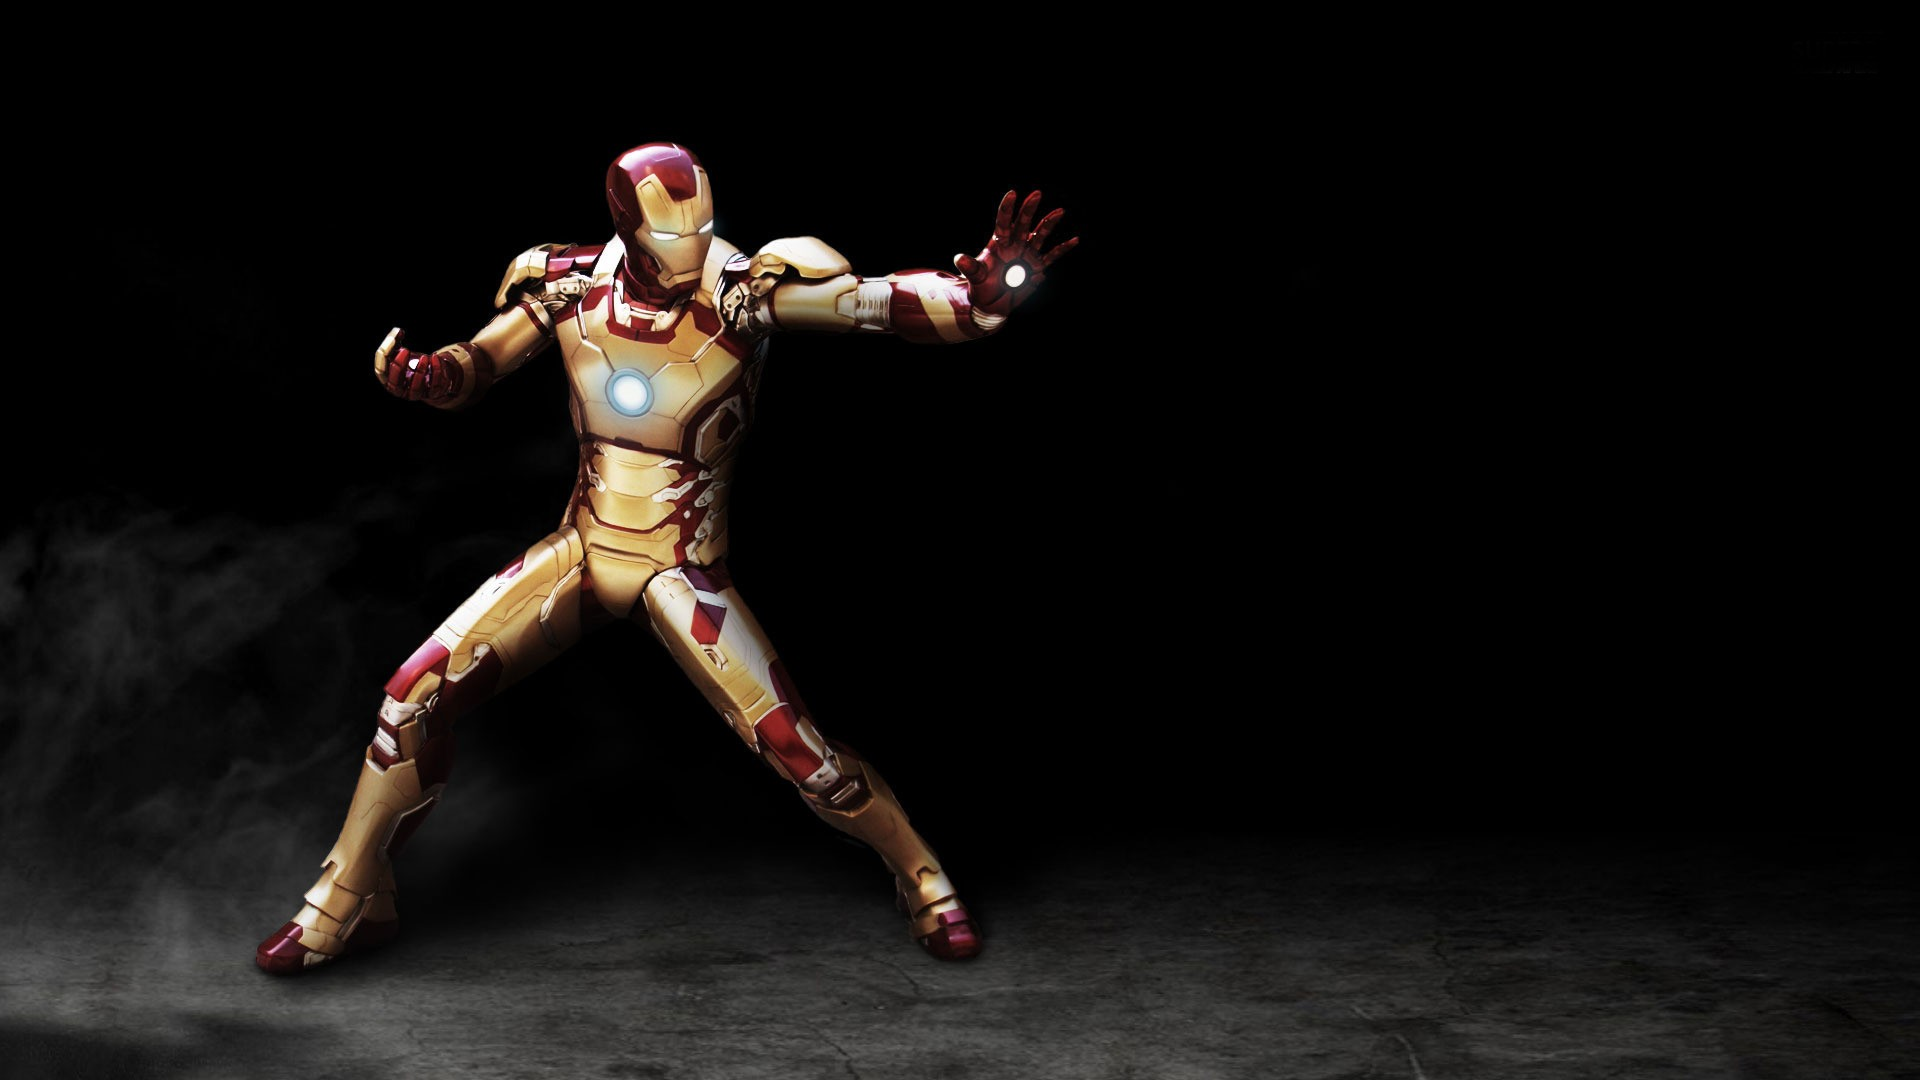 Iron Man Mark 42 Wallpaper